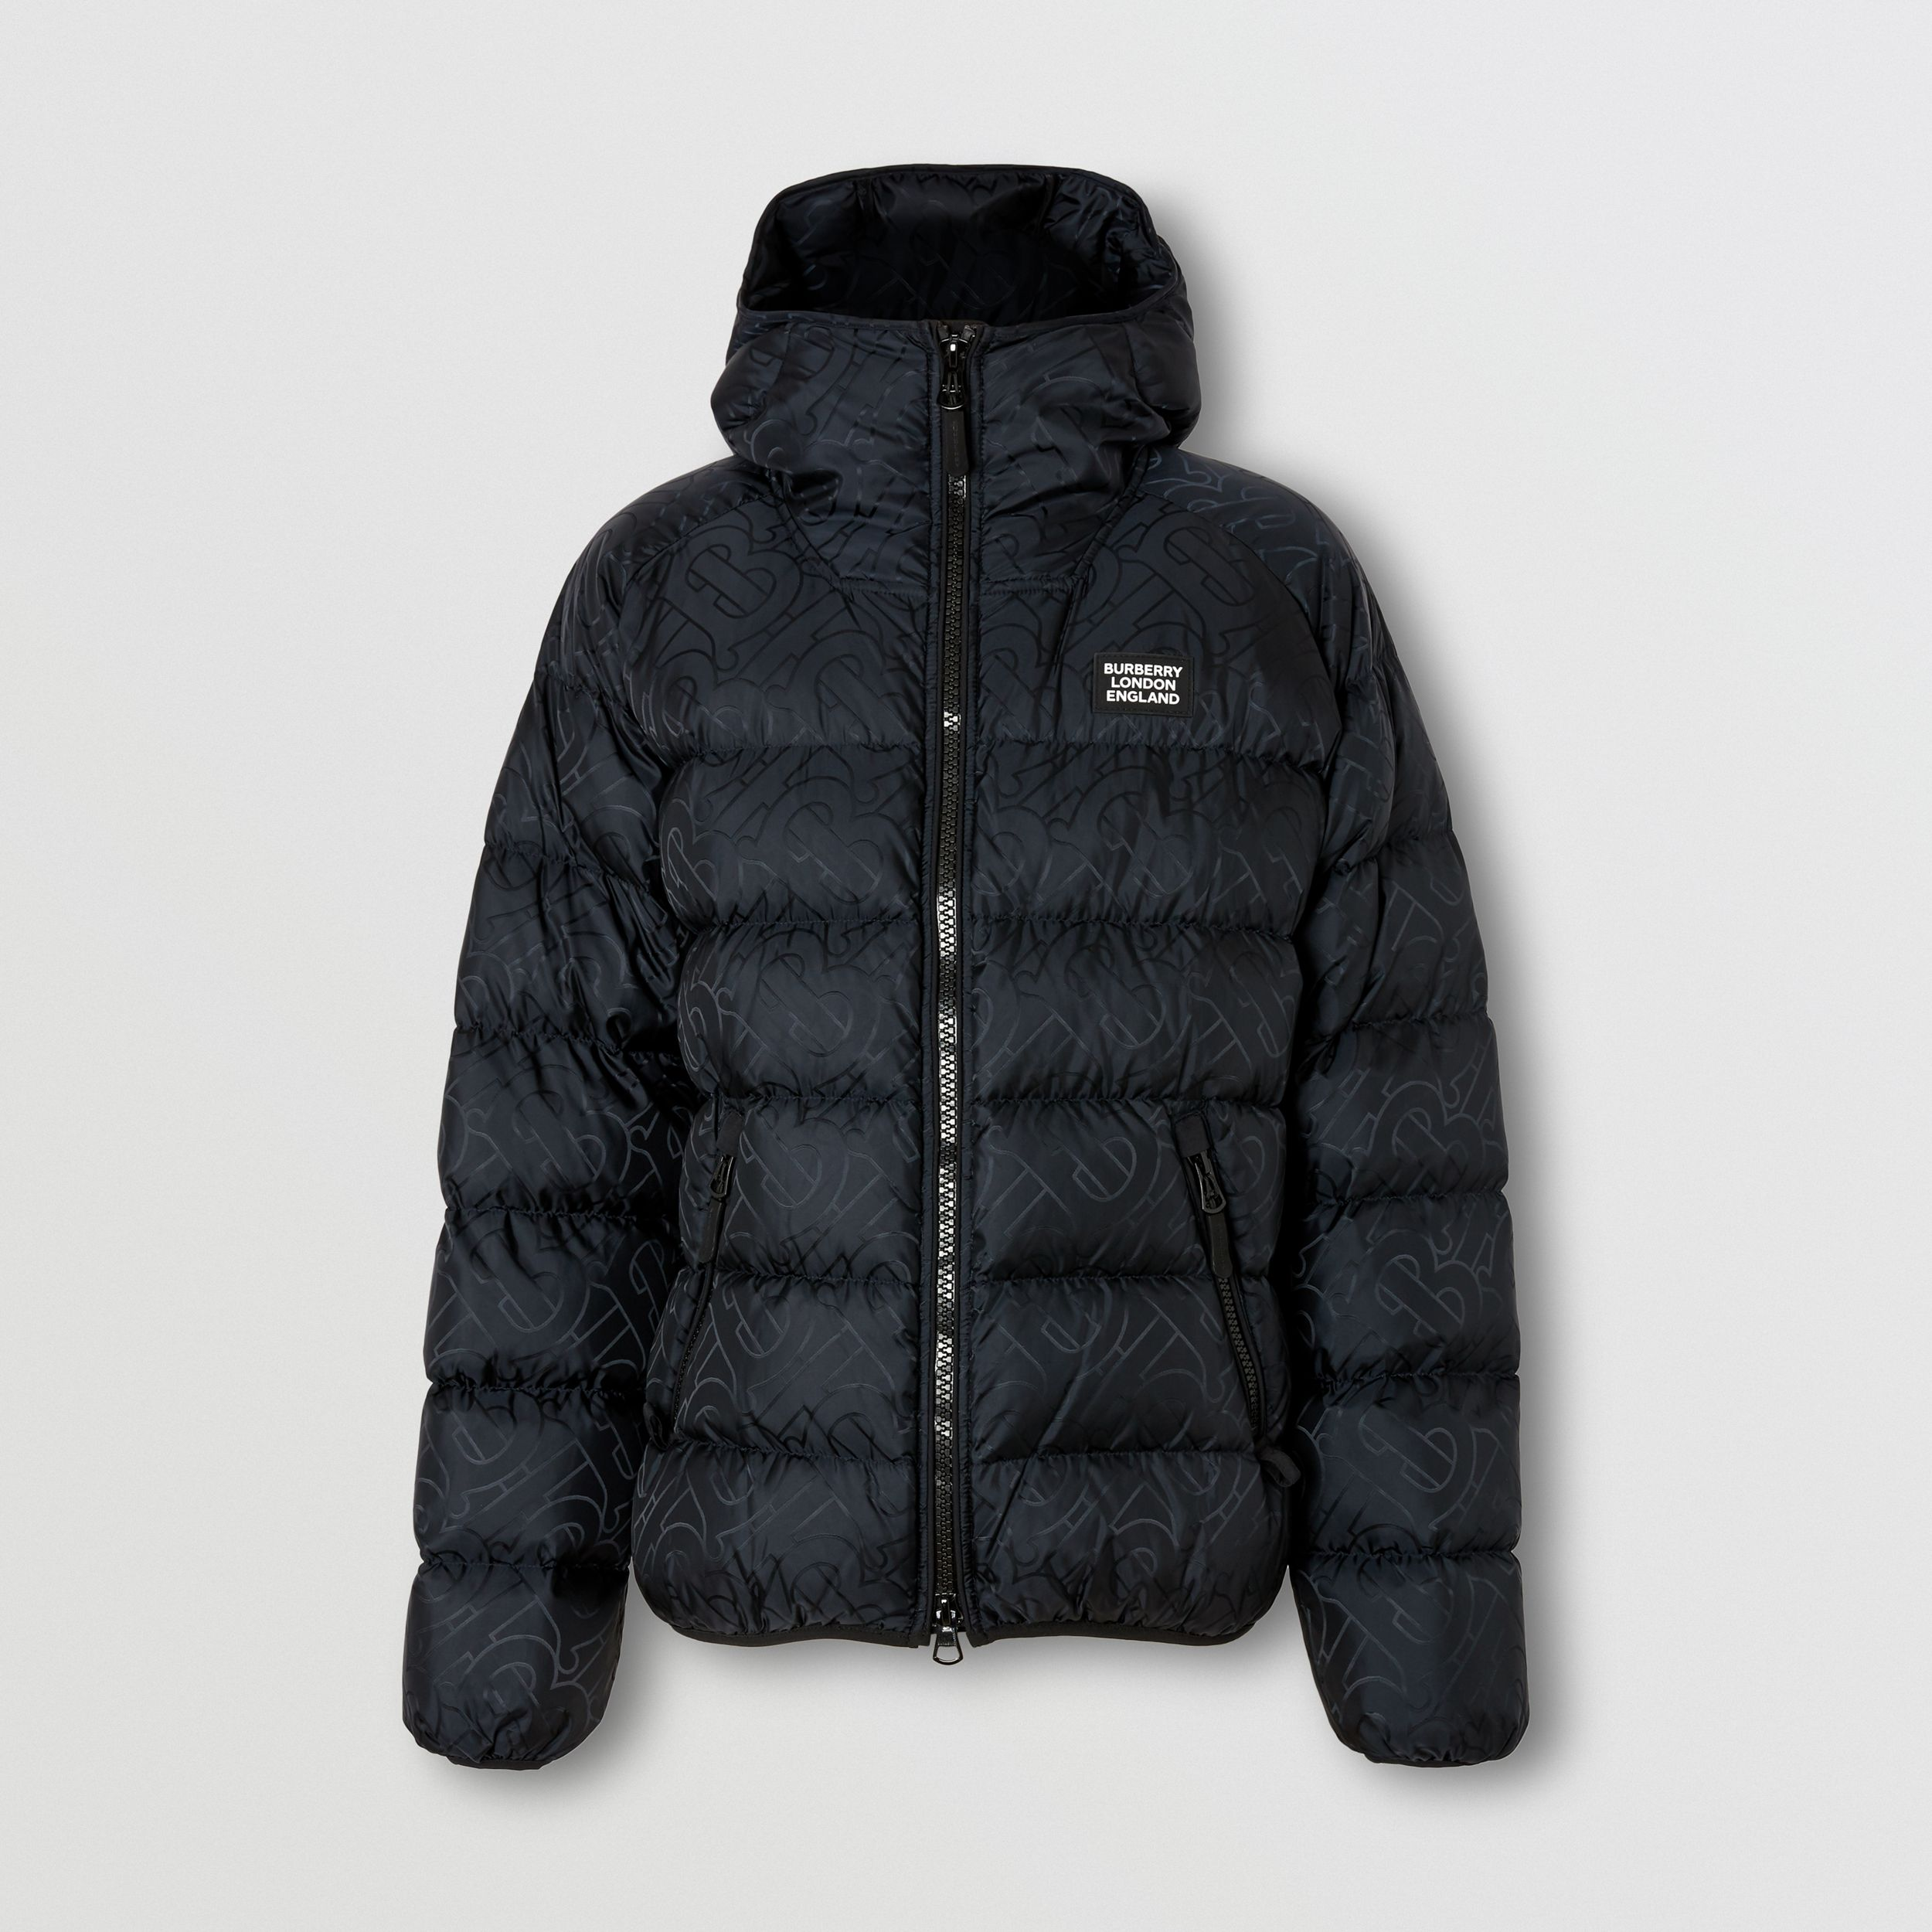 Monogram Jacquard Hooded Puffer Jacket in Black - Men | Burberry United States - 4